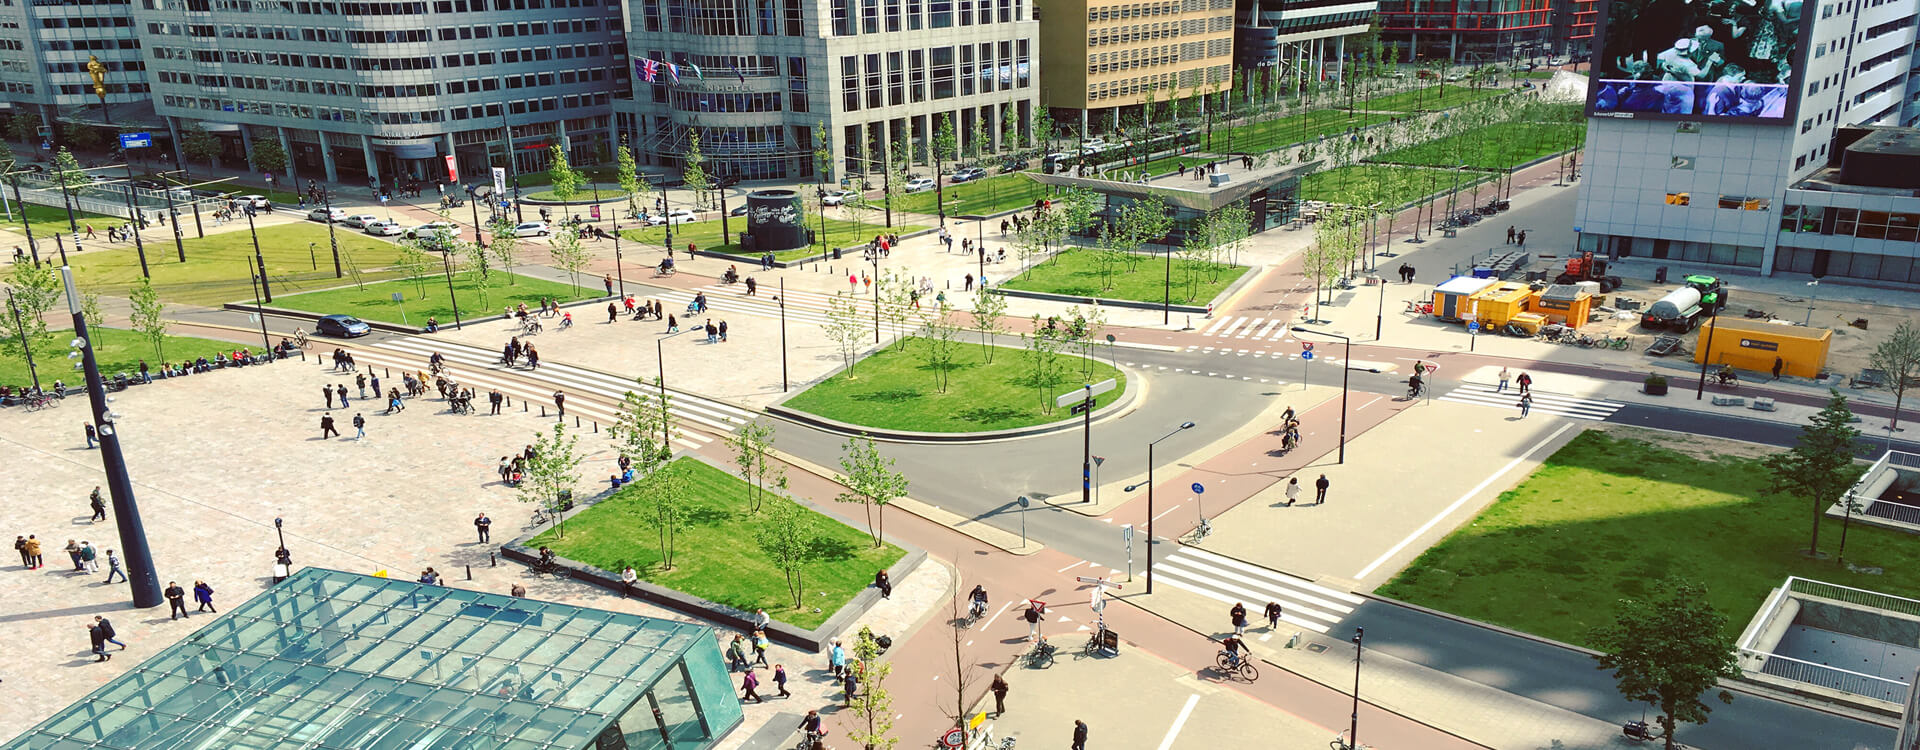 Smart Cities   Digital solutions for Municipalities - Civiq Dream by PARTTEAM & OEMKIOSKS